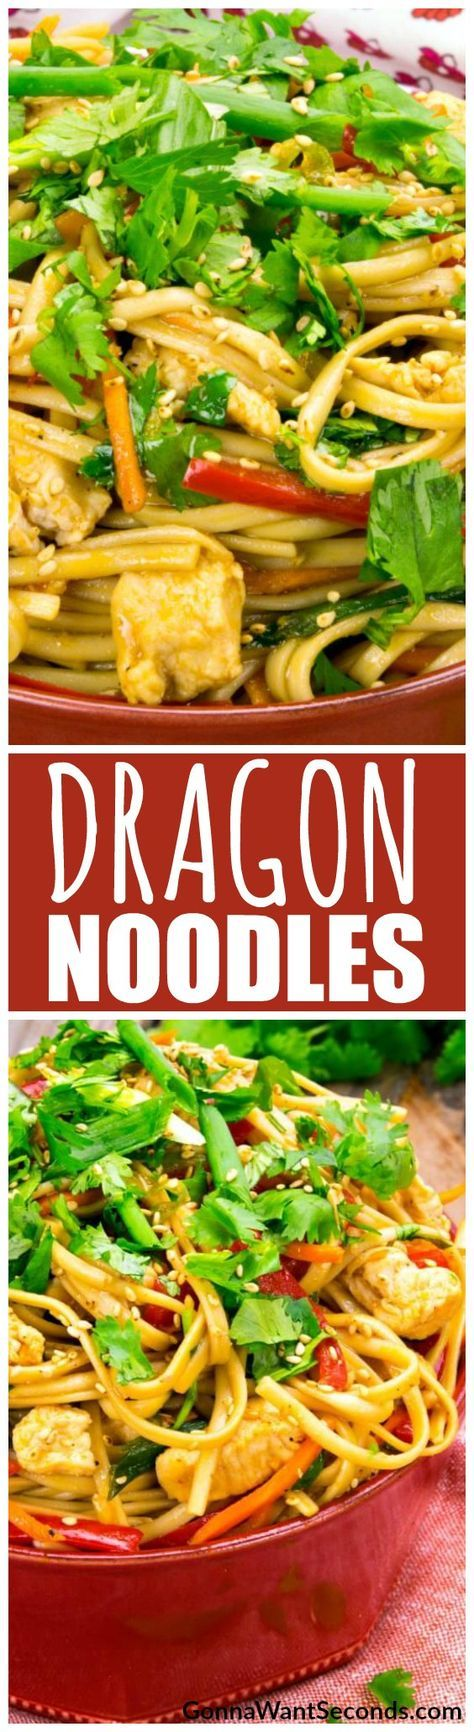 Fire up your wok for this dynamite Dragon Noodles recipe. Soft lo mein tossed with tender chicken and crisp veggies served up in a scorching sauce is just what you need to spice up your dinner table!